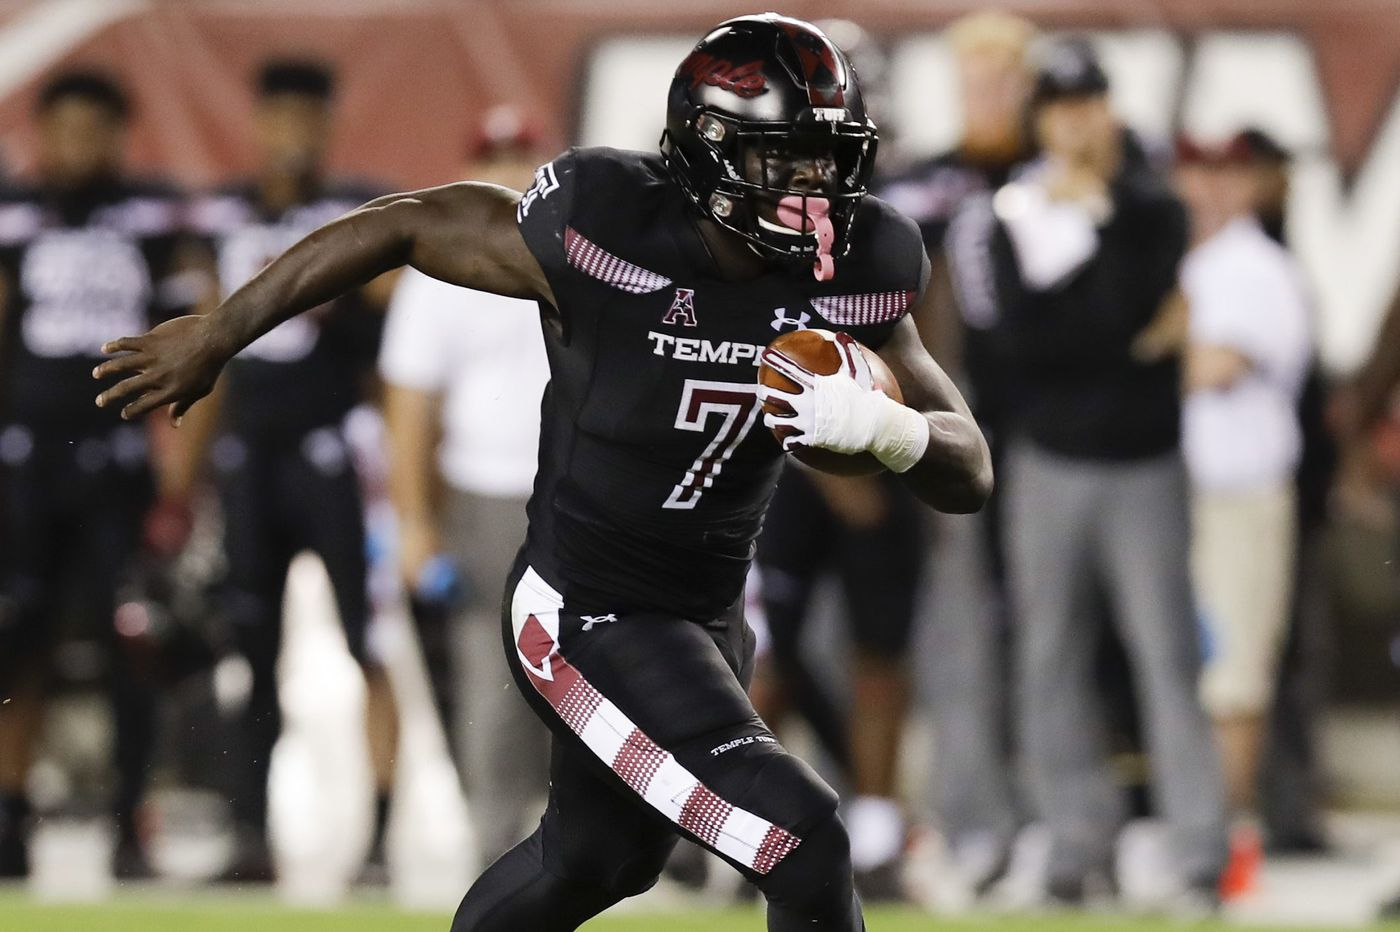 Five observations from Temple's 59-49 win at Houston